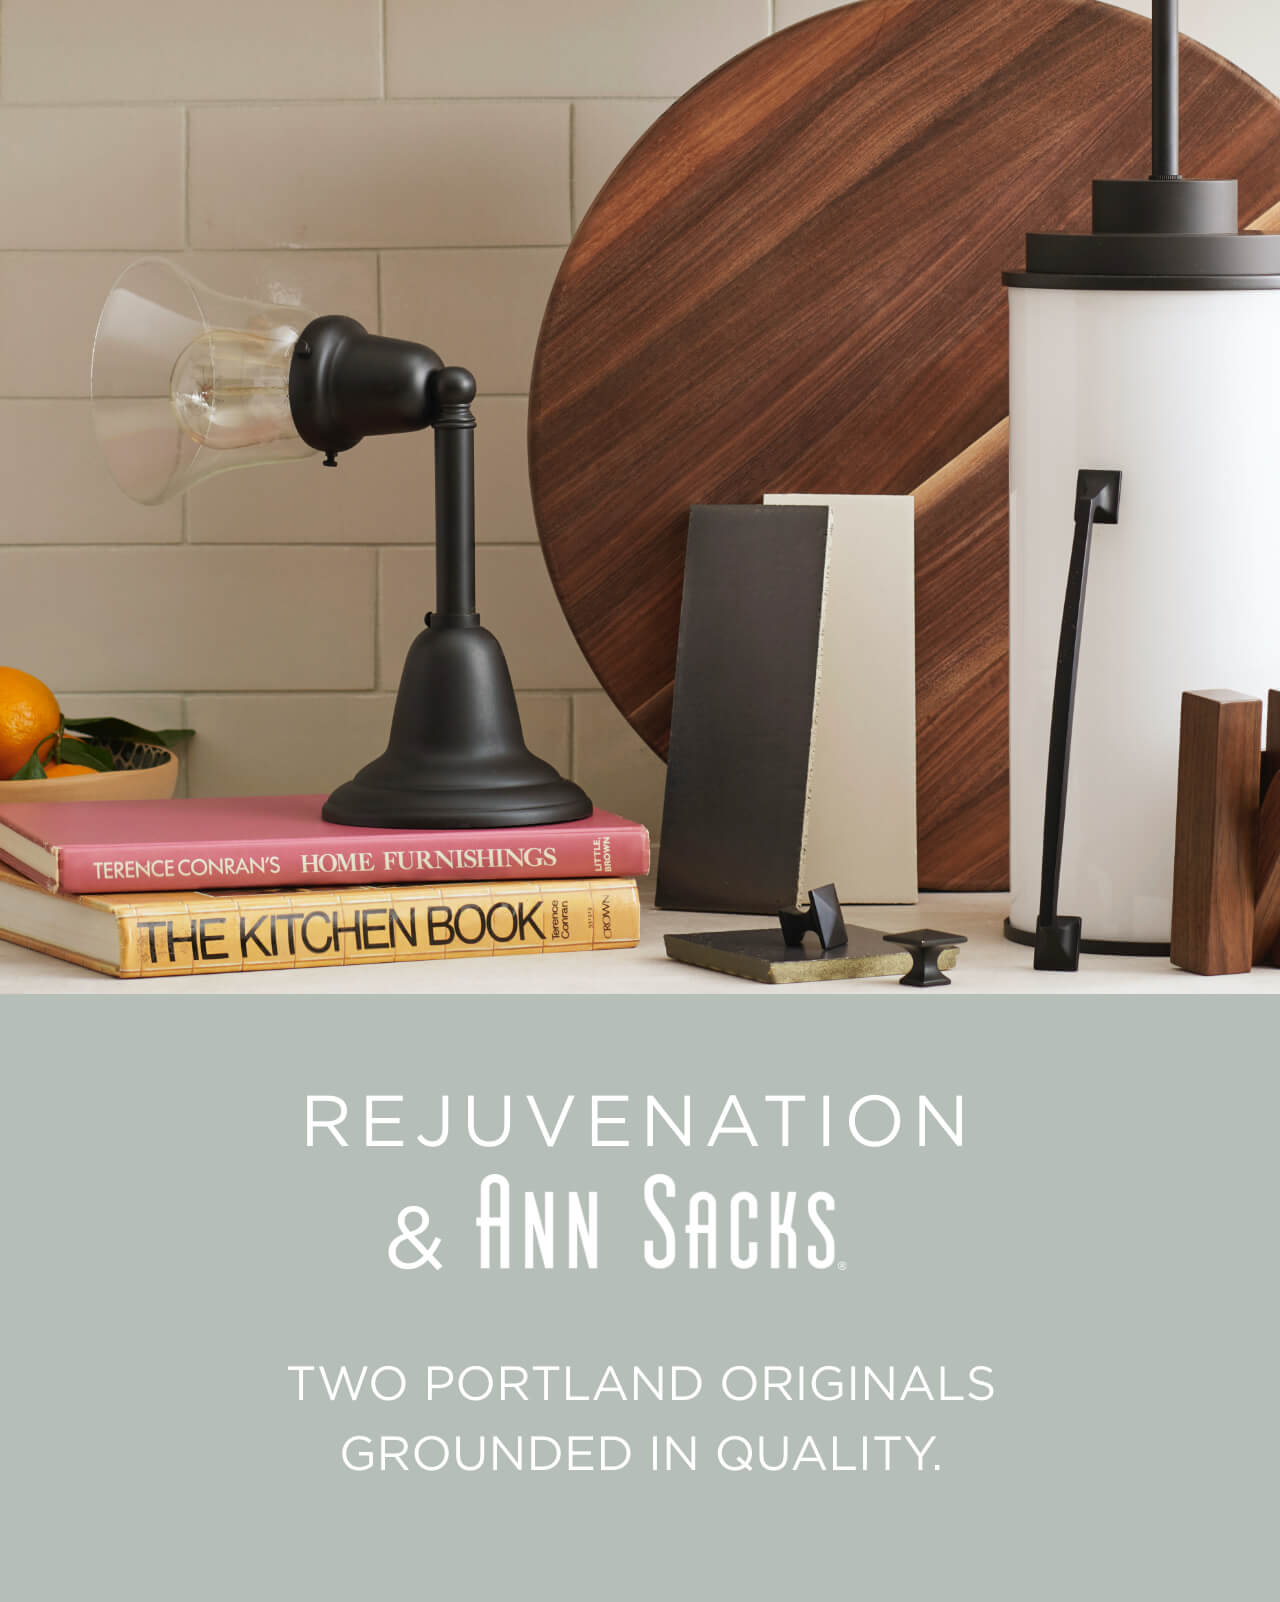 Rejuvenation and Ann Sacks. Two Portland originals grounded in quality.